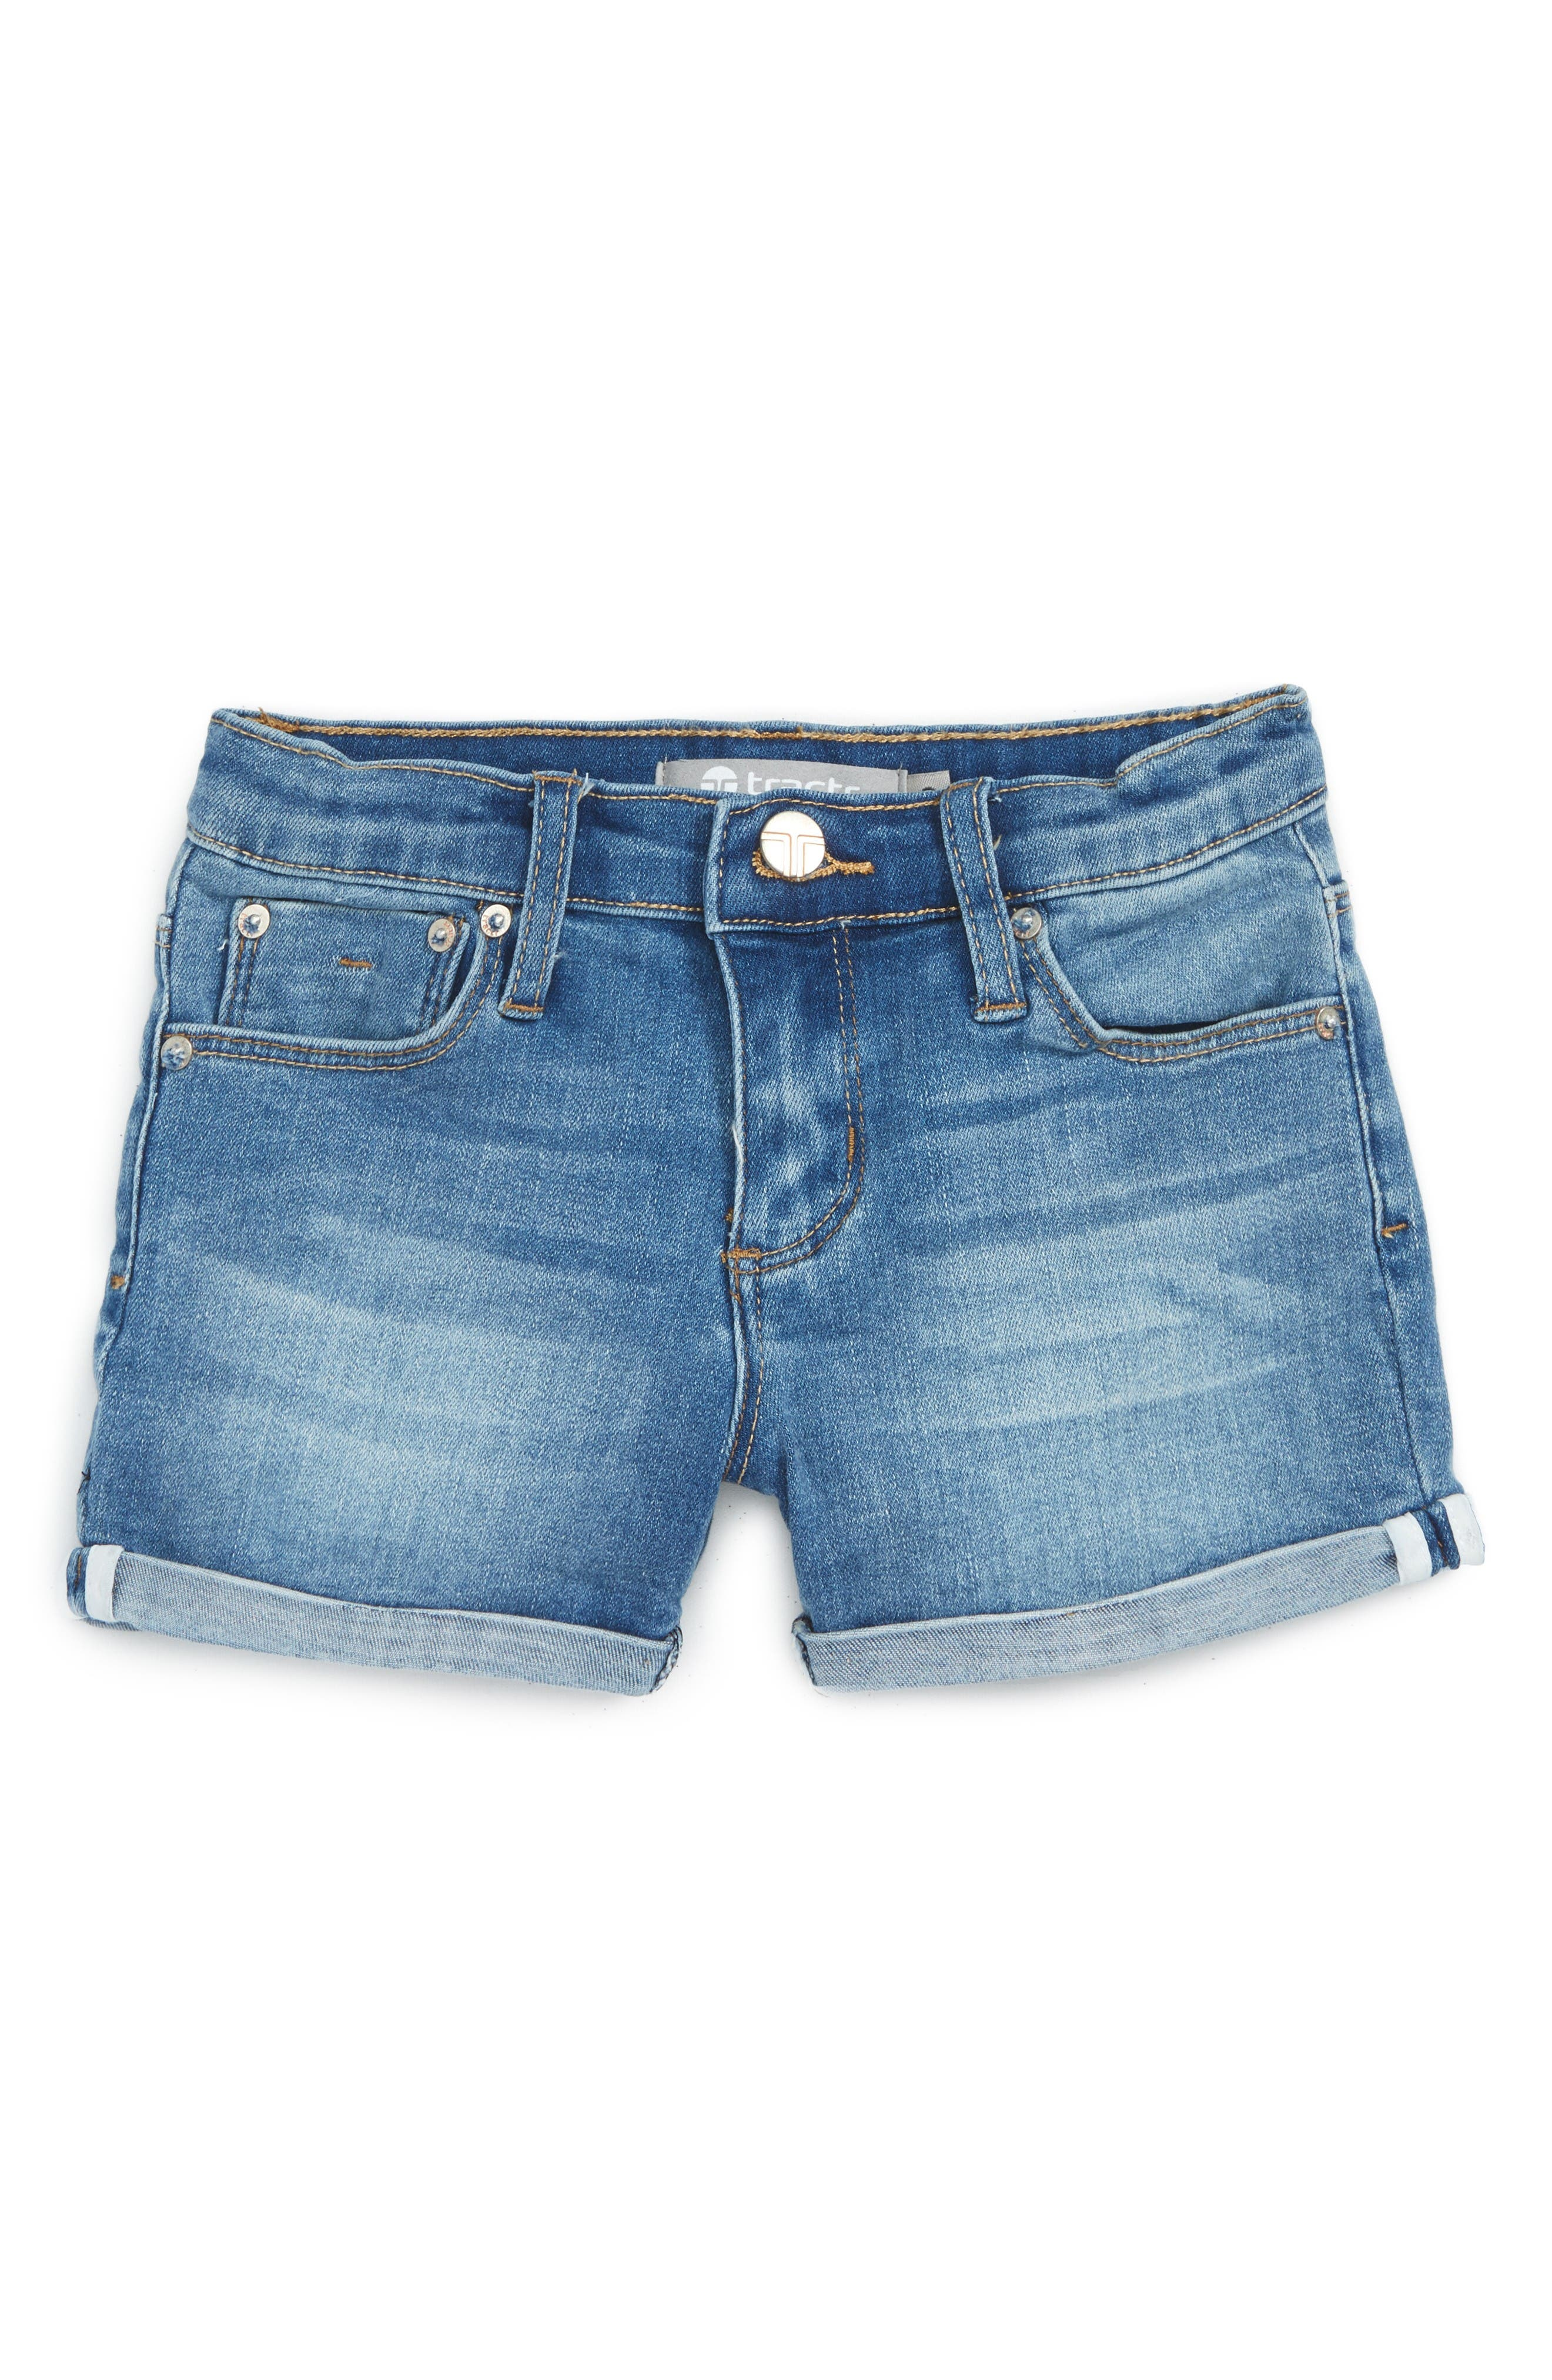 TRACTR Roll Cuff Denim Shorts